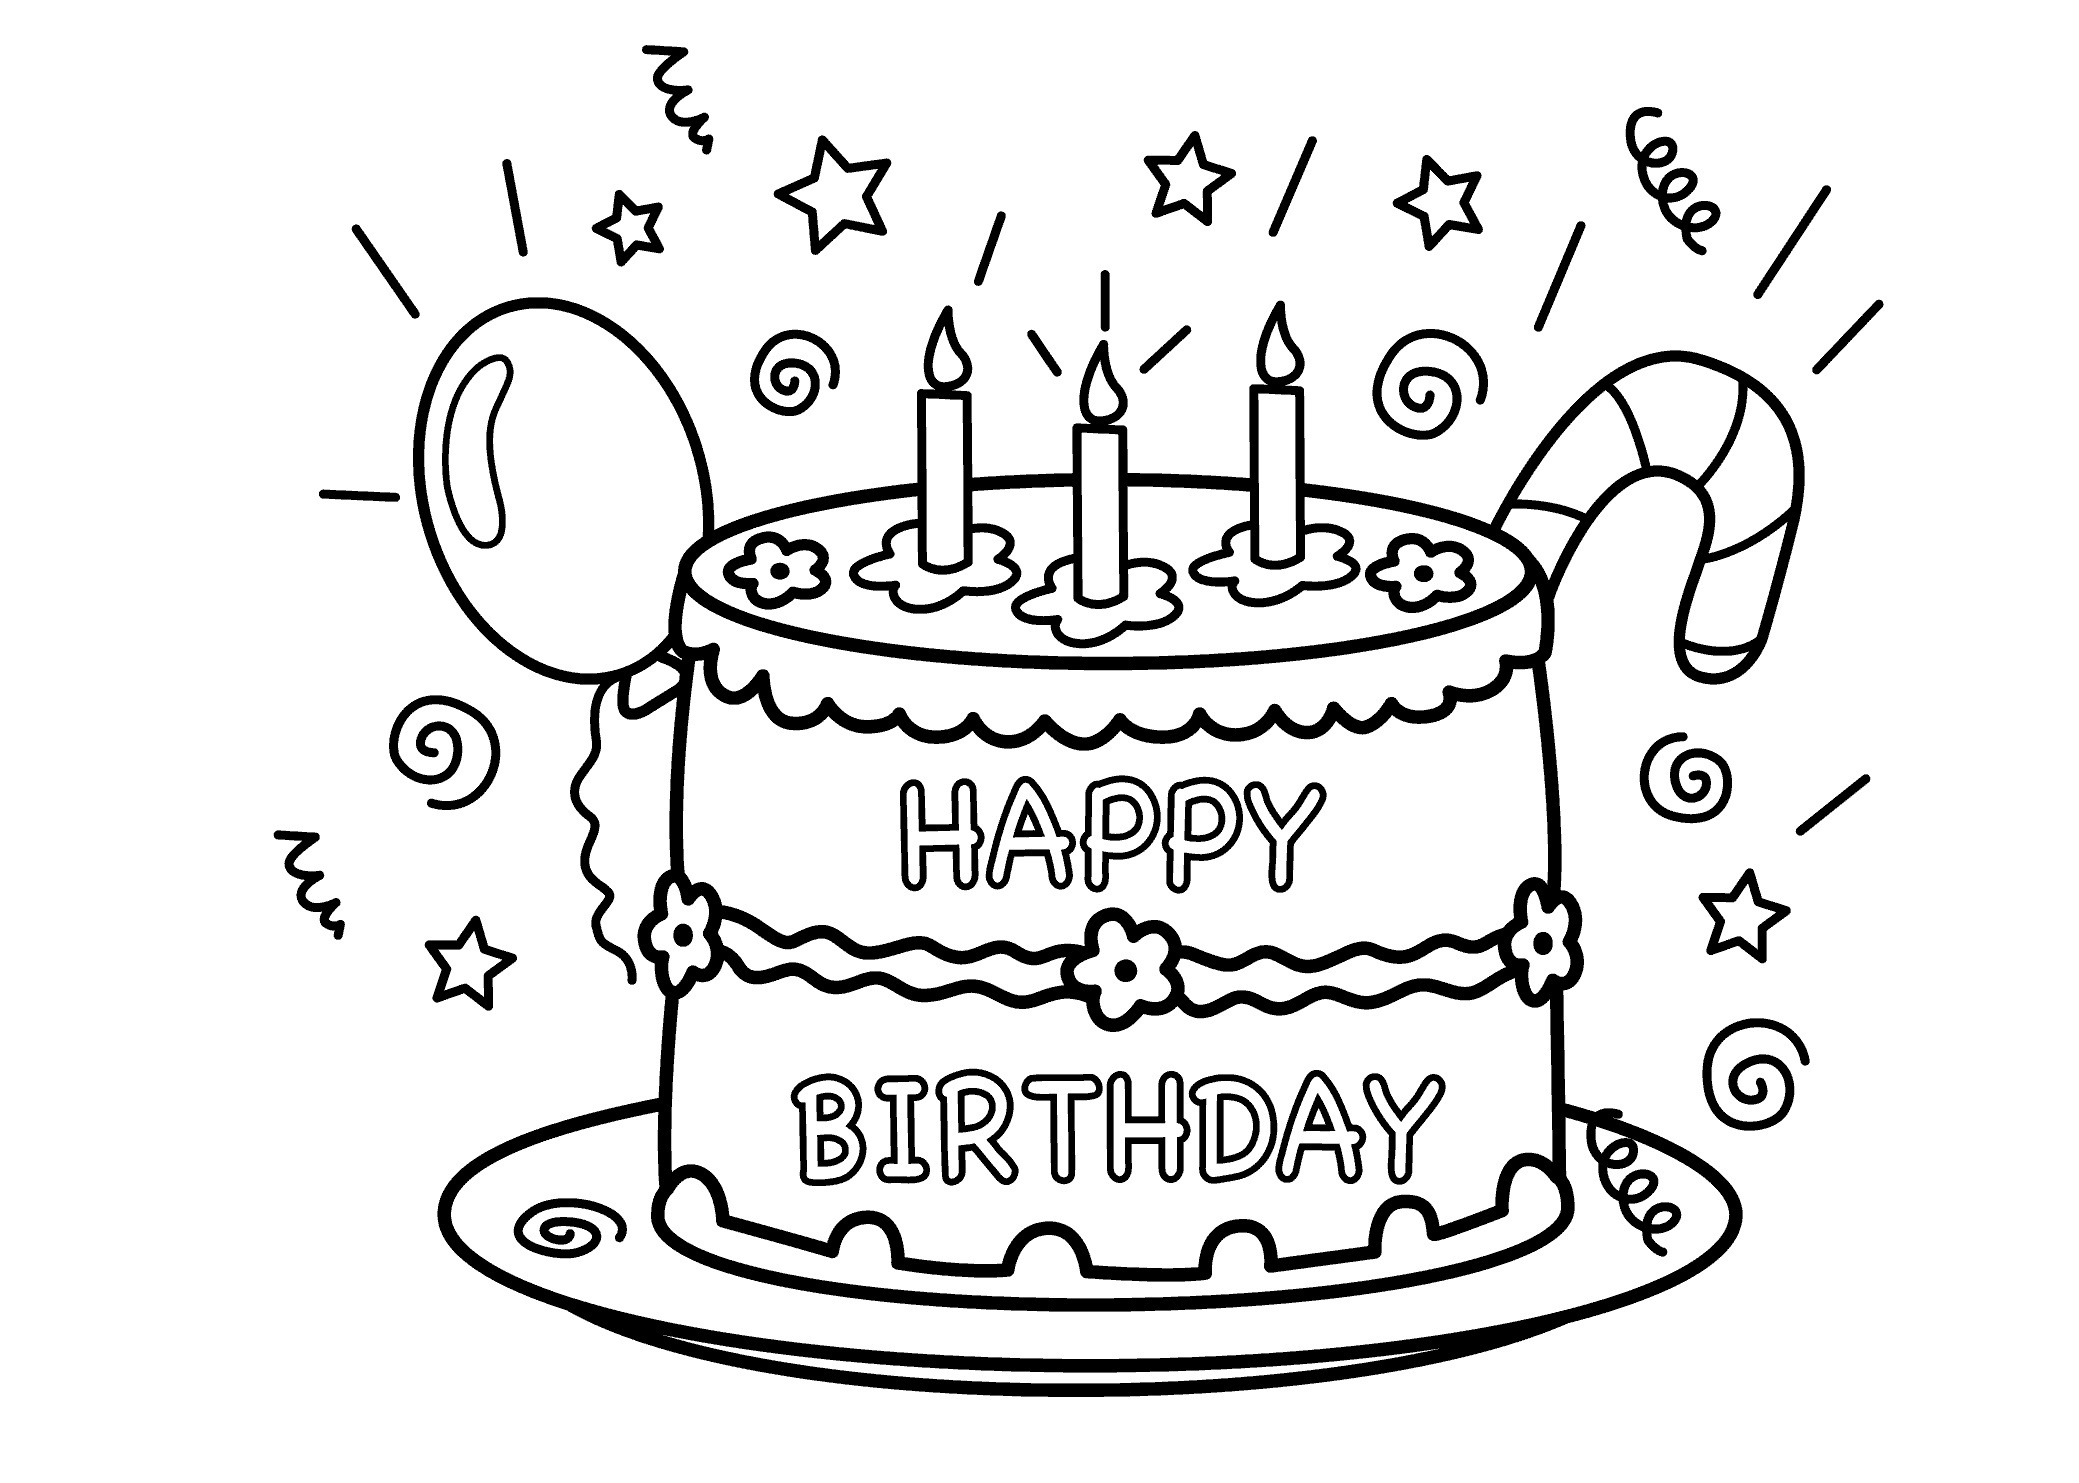 birthday cake coloring sheets. free printable birthday cake coloring ...